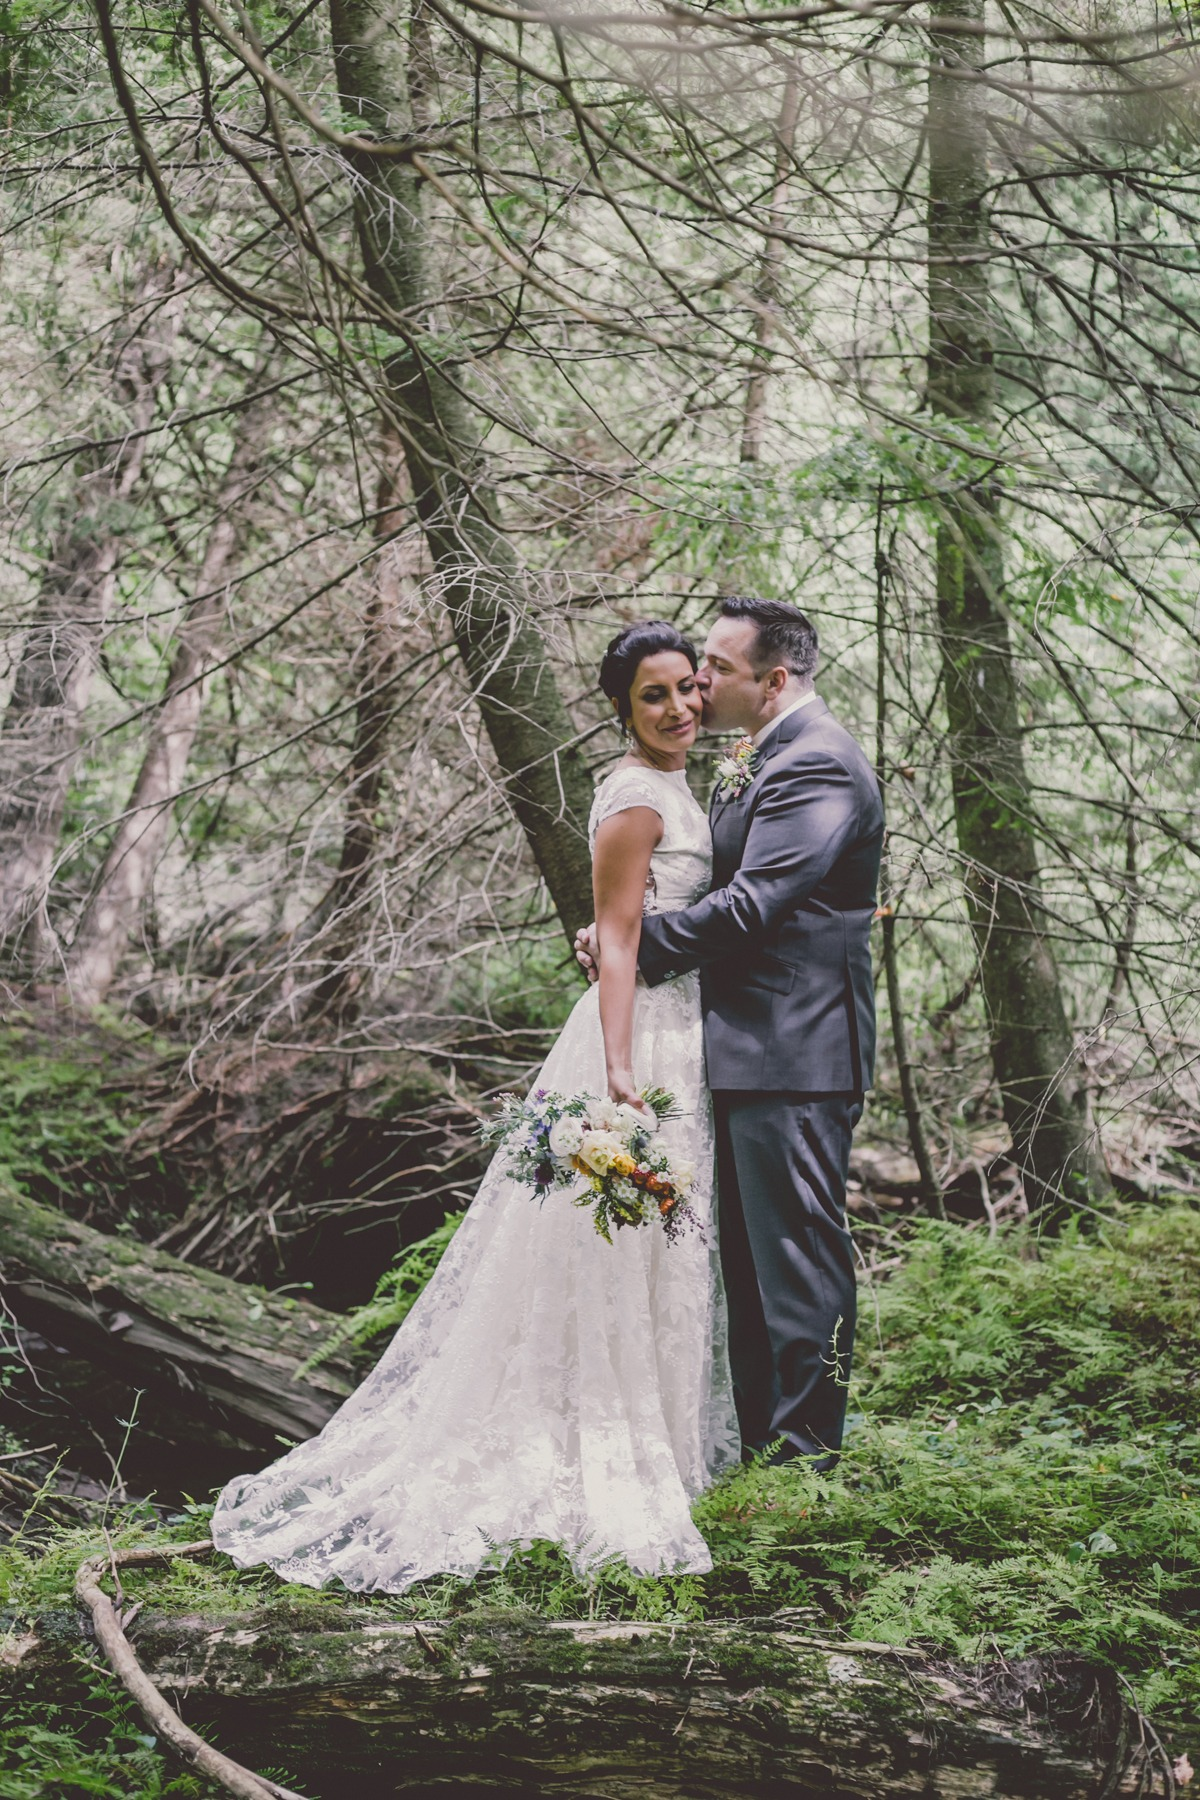 sweet wedding couple photos in the forest